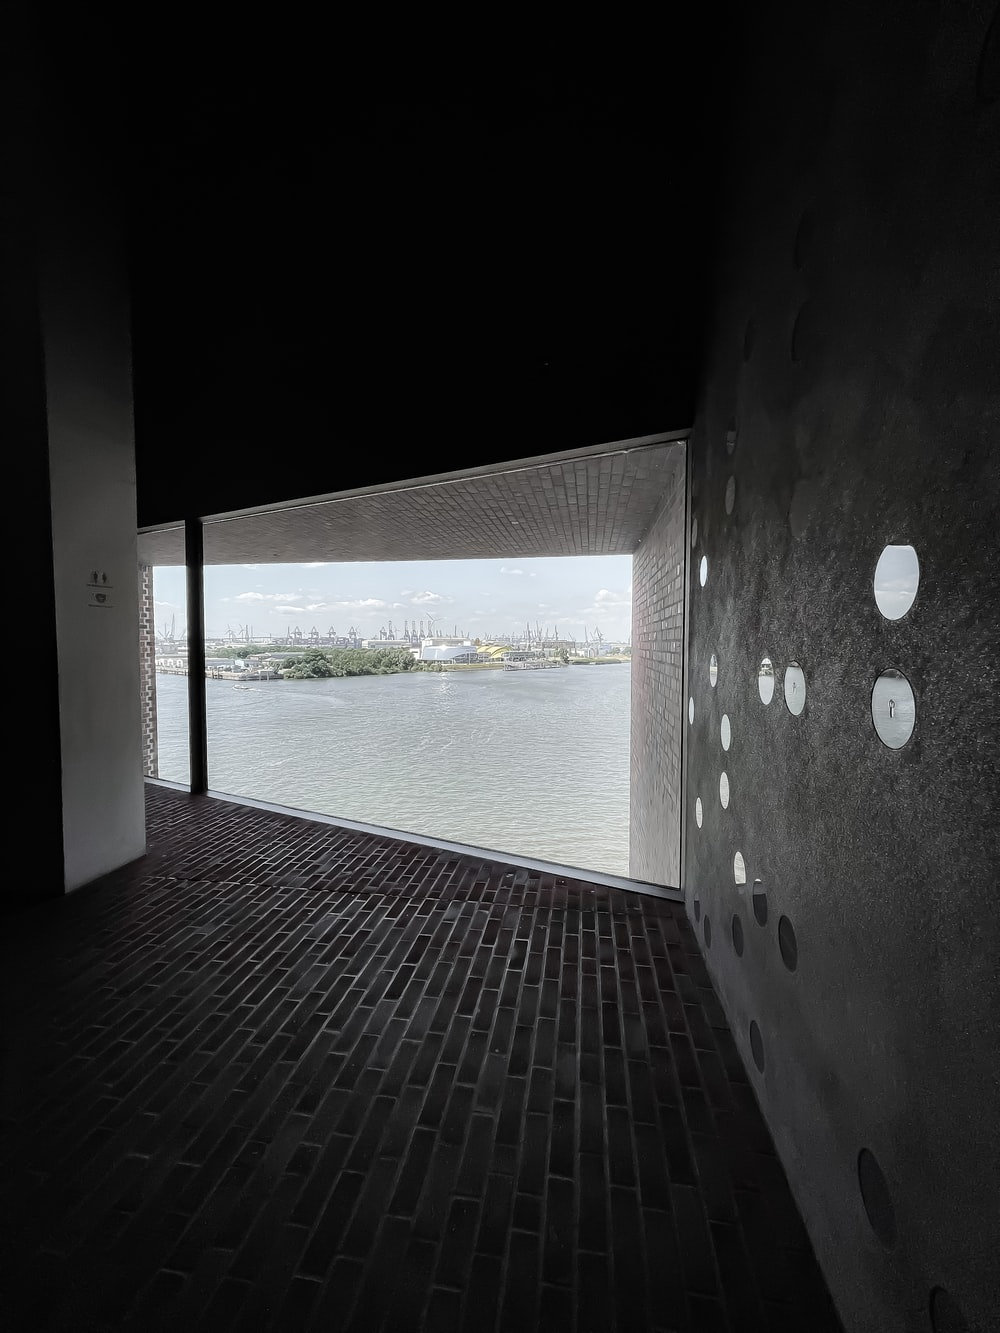 black and white concrete building near body of water during daytime